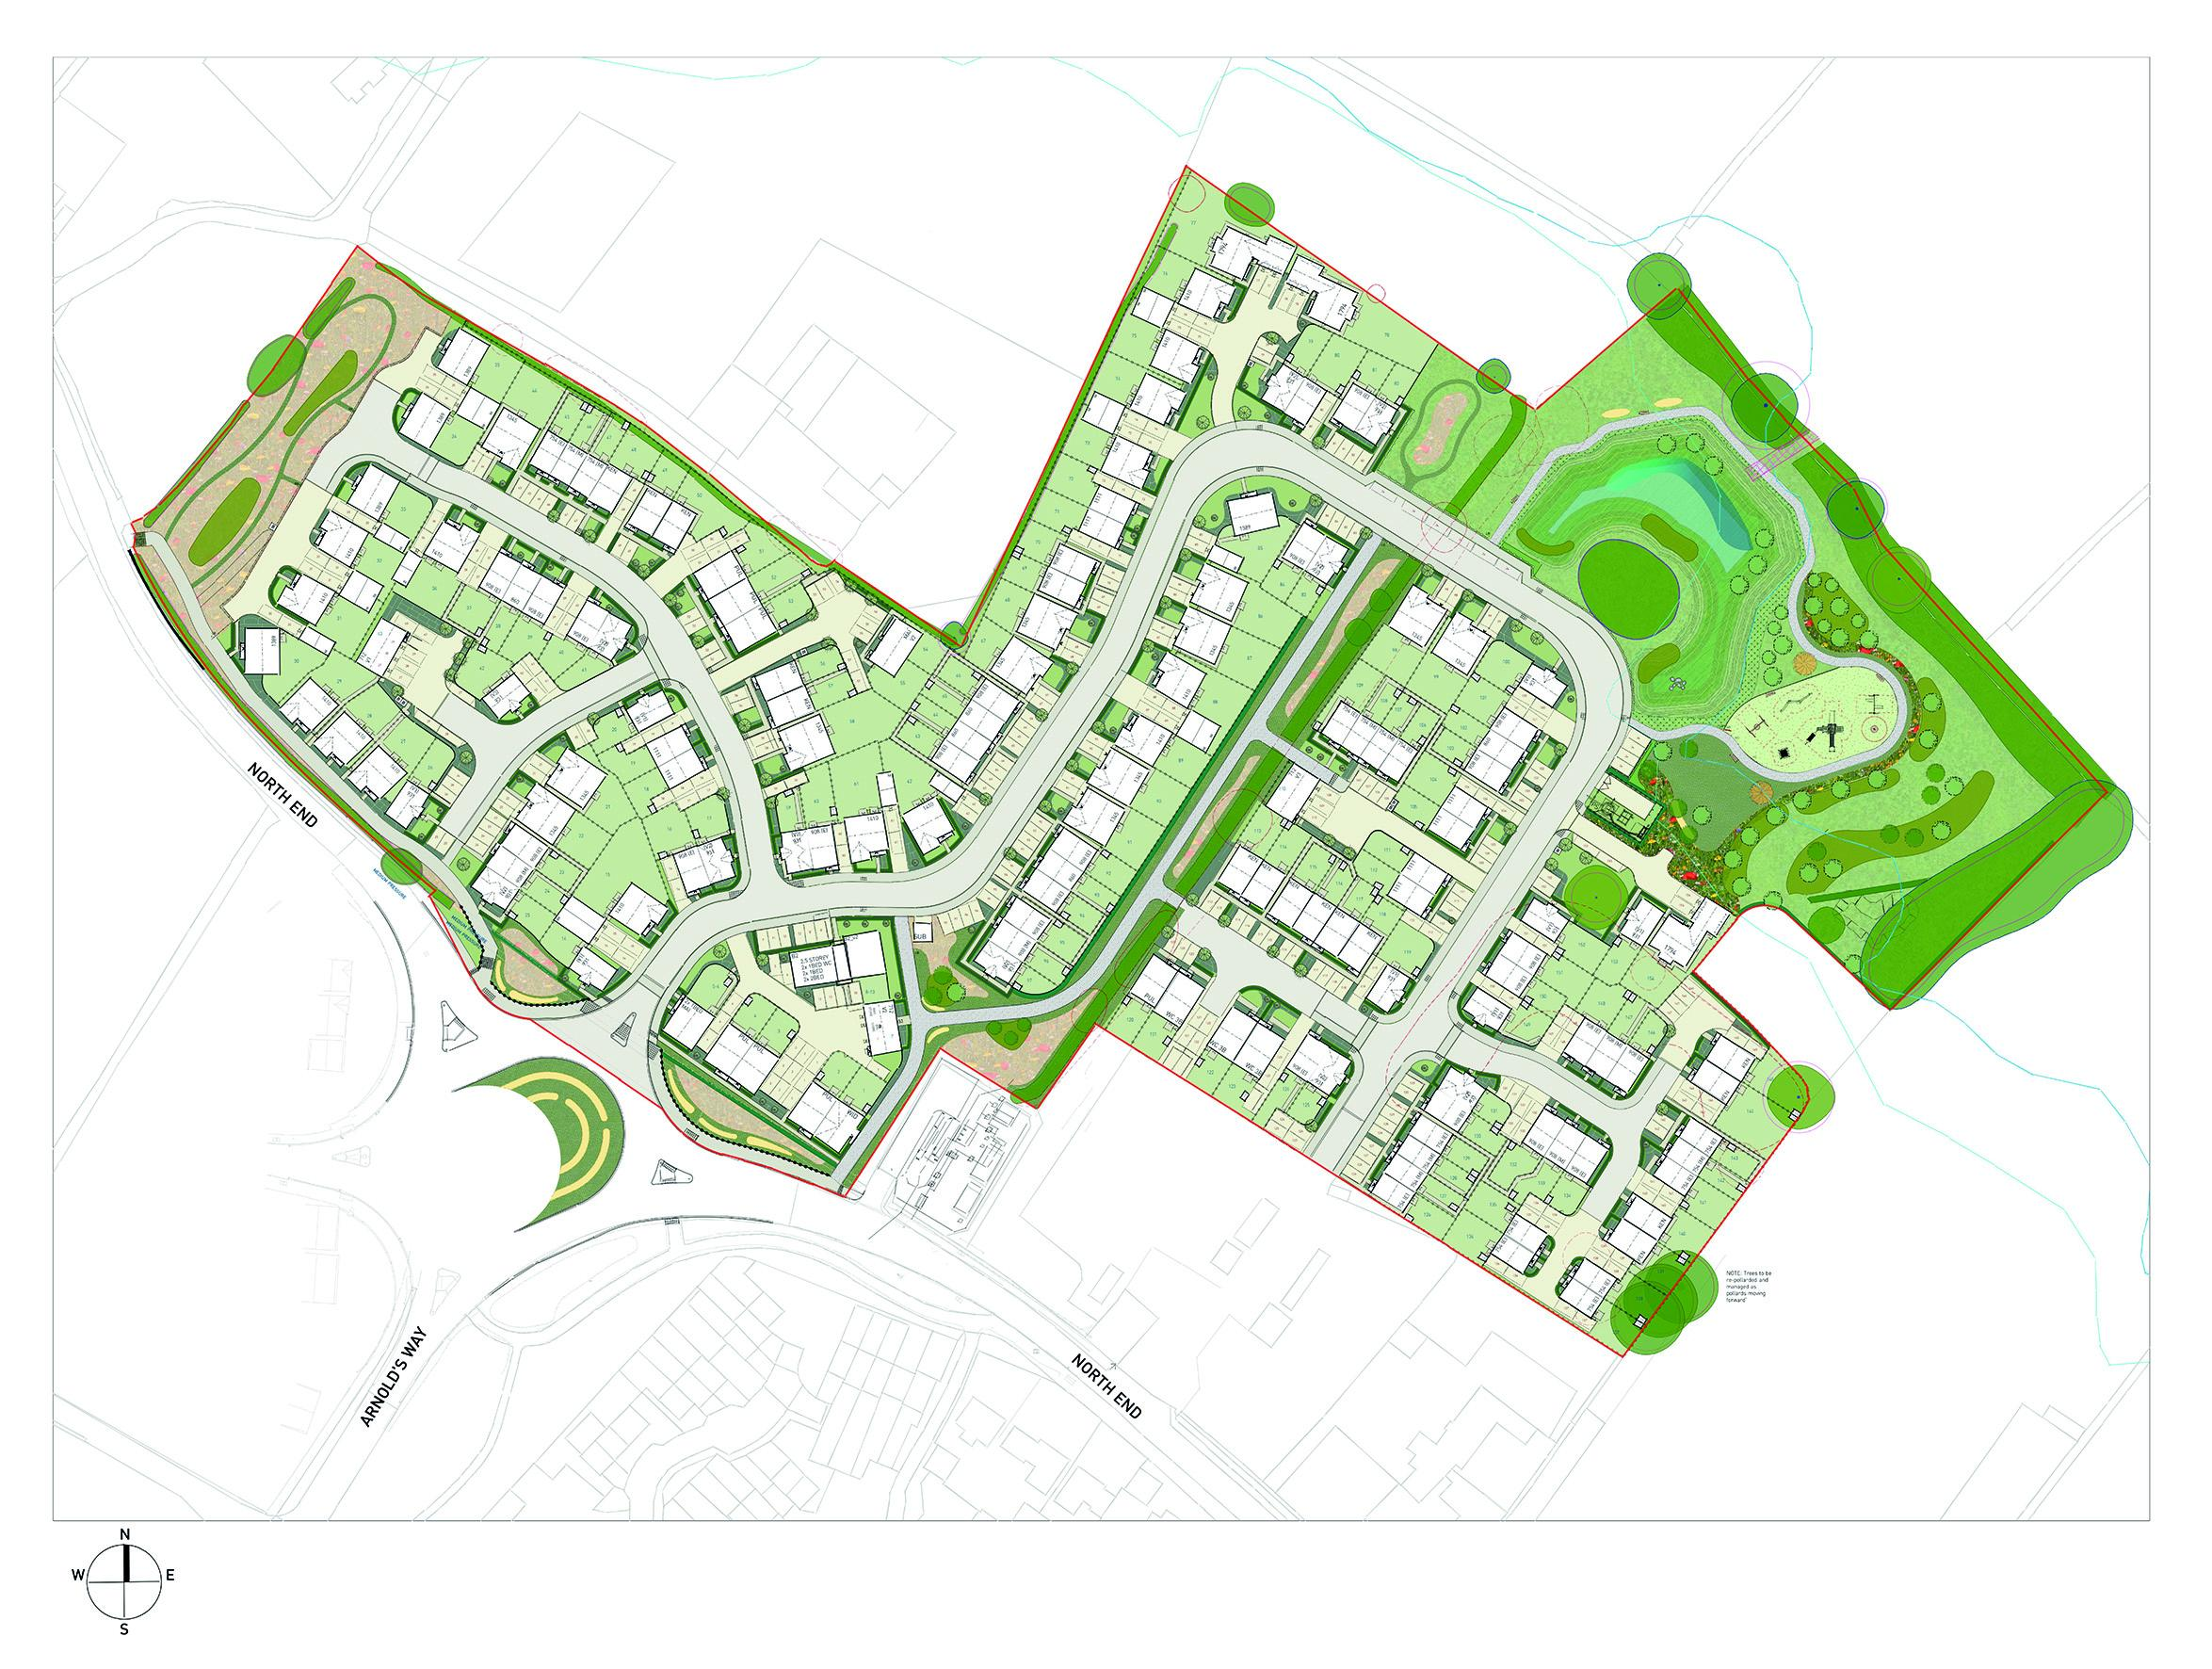 Curo to build 154 new homes in Yatton, North Somerset